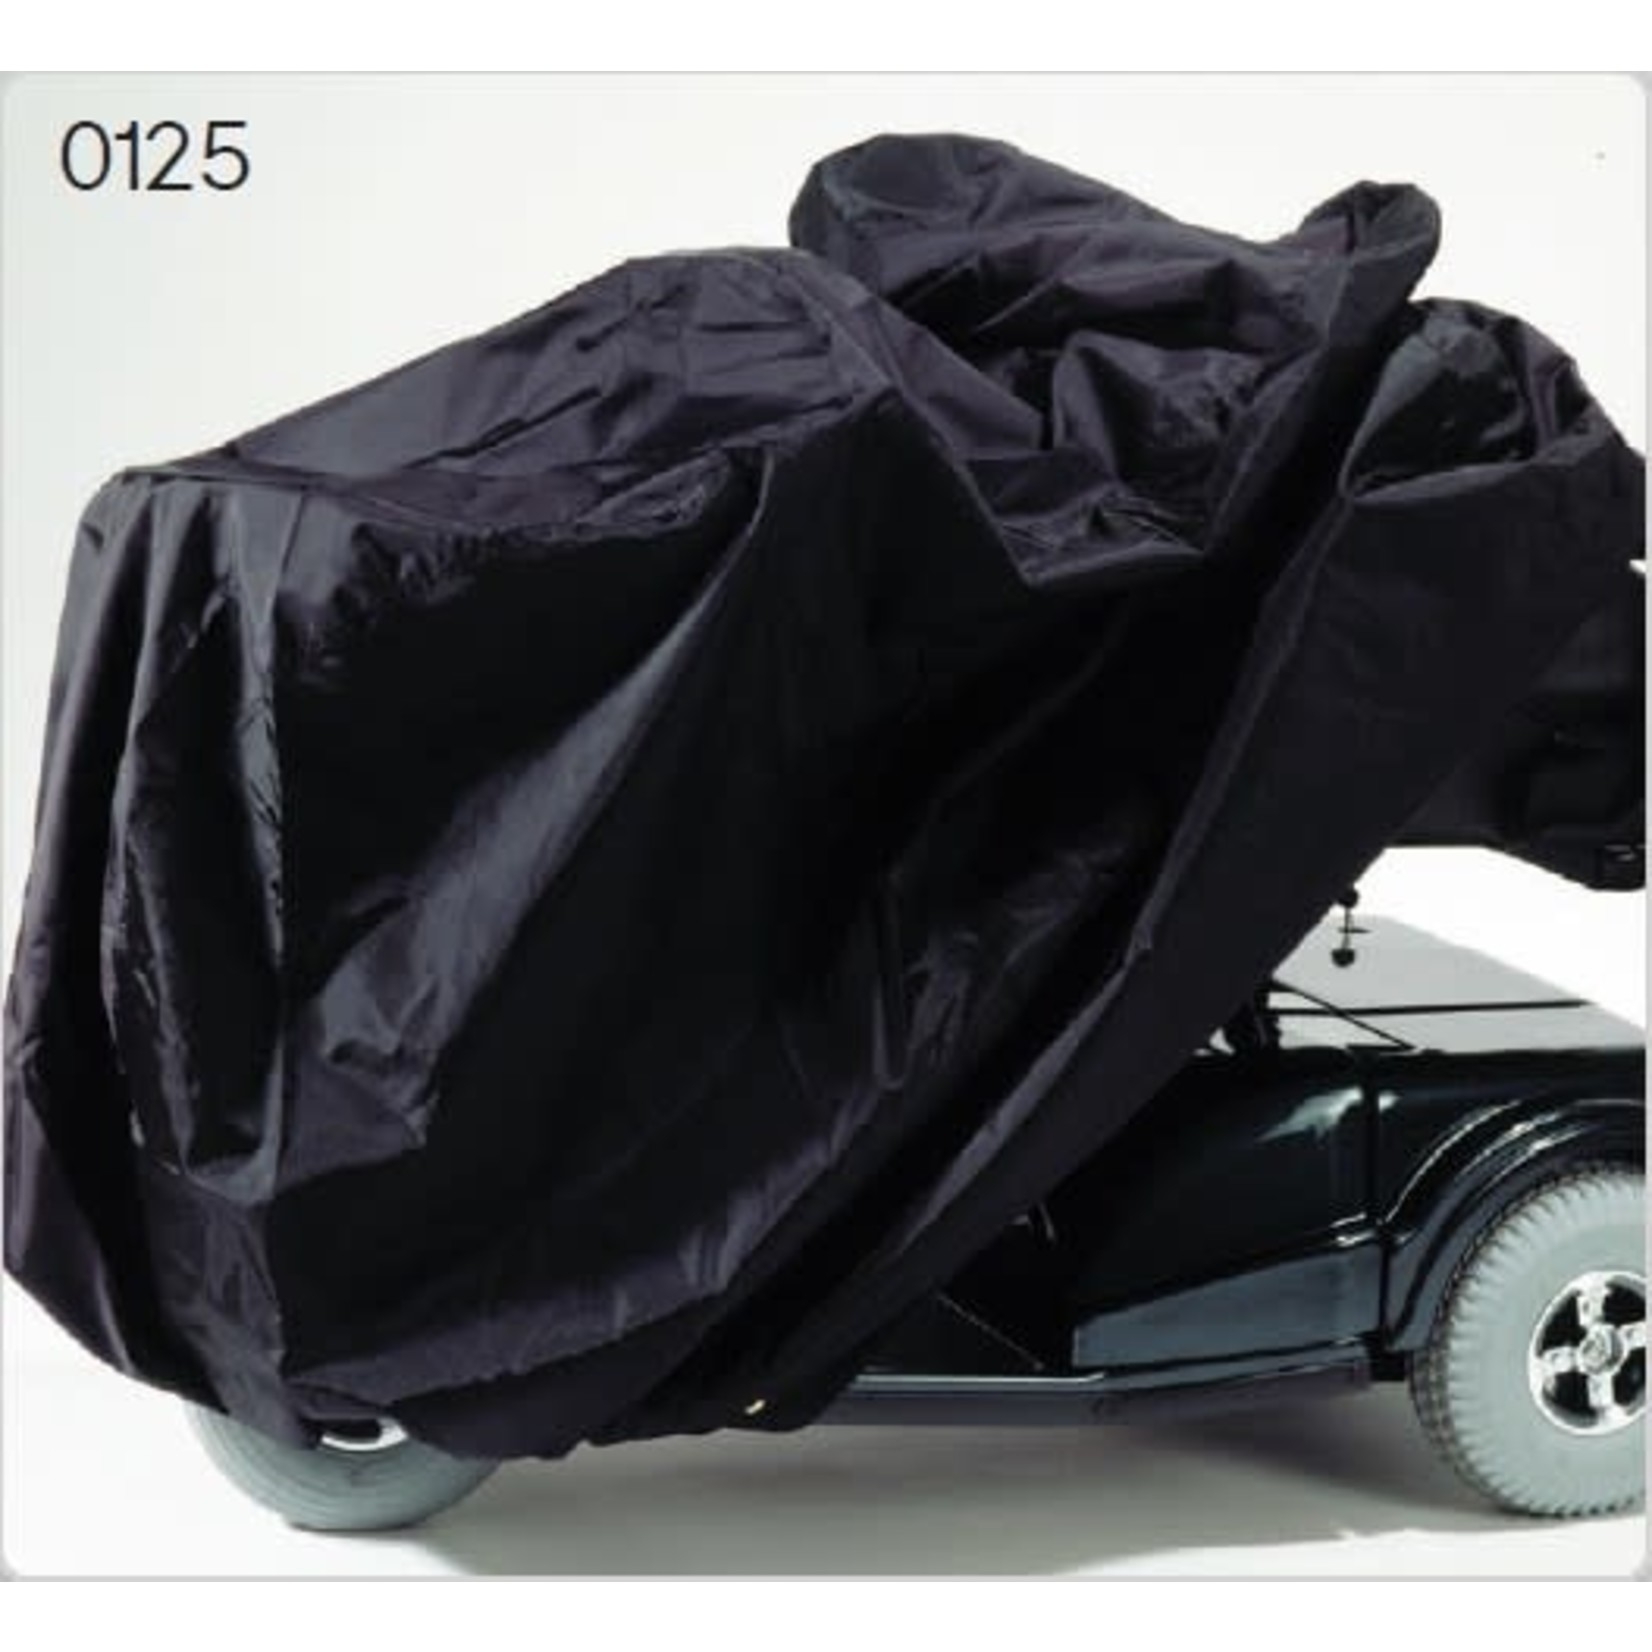 EZ Access EZ-ACCESSORIES Scooter and power chair covers for scooter cover